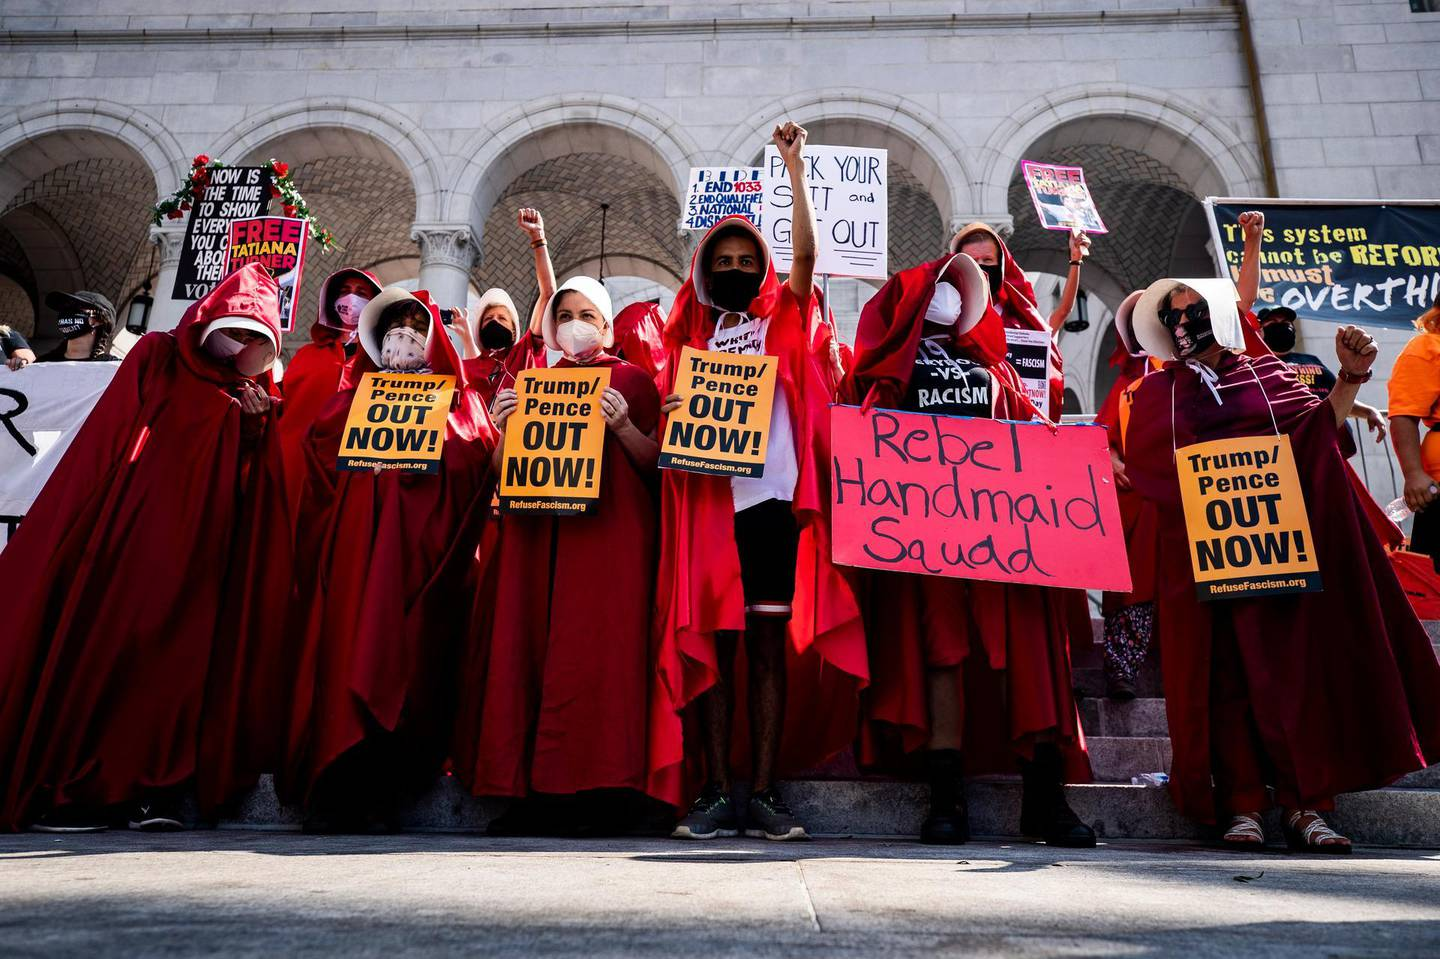 epa08754341 Protesters wearing handmaid costumes stands in front of City Hall as they join hundreds of protesters during a pre-election Women's march in Los Angeles, California, USA, 17 October 2020. The second Women's March of 2020 was organized to encourage women to vote in the upcoming 03 November presidential election, as well as calling on Congress to suspend the confirmation process of the Supreme Court Nominee Amy Coney Barrett.  EPA/ETIENNE LAURENT